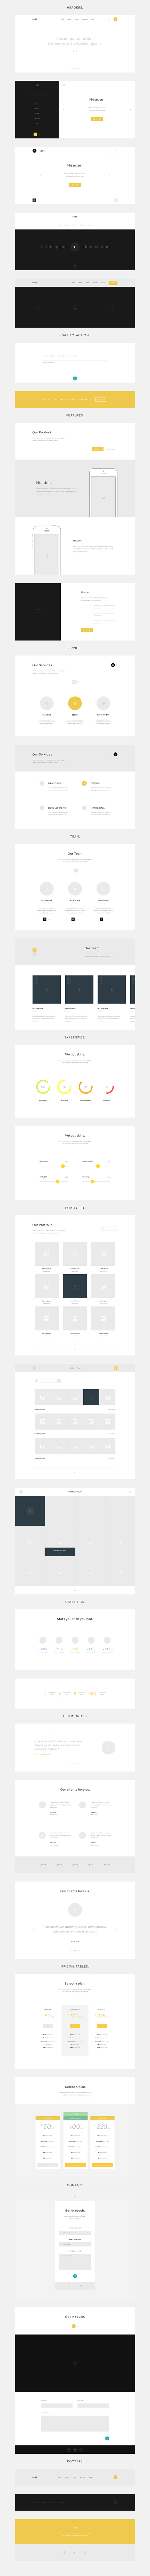 free one page website wireframe 2014